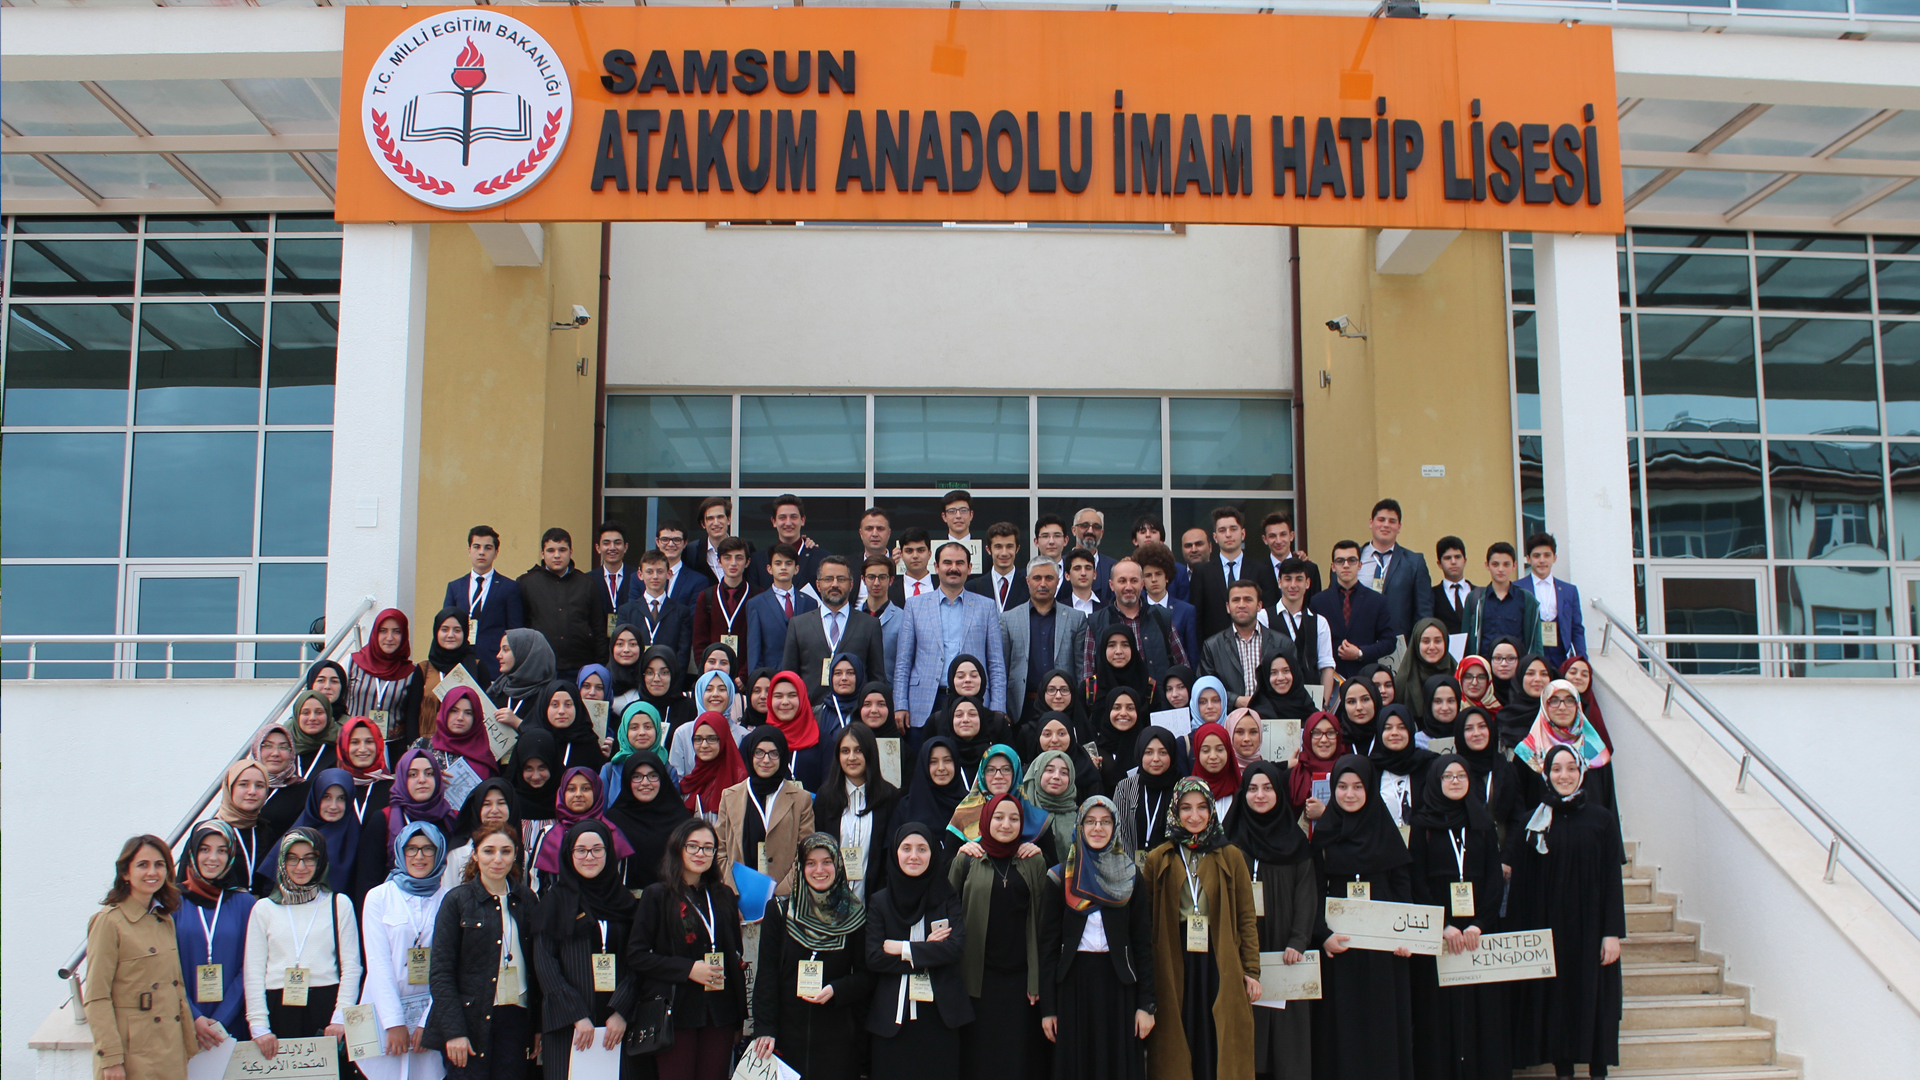 Atakum Anadolu Imam-Hatip High School Model United Nations Club